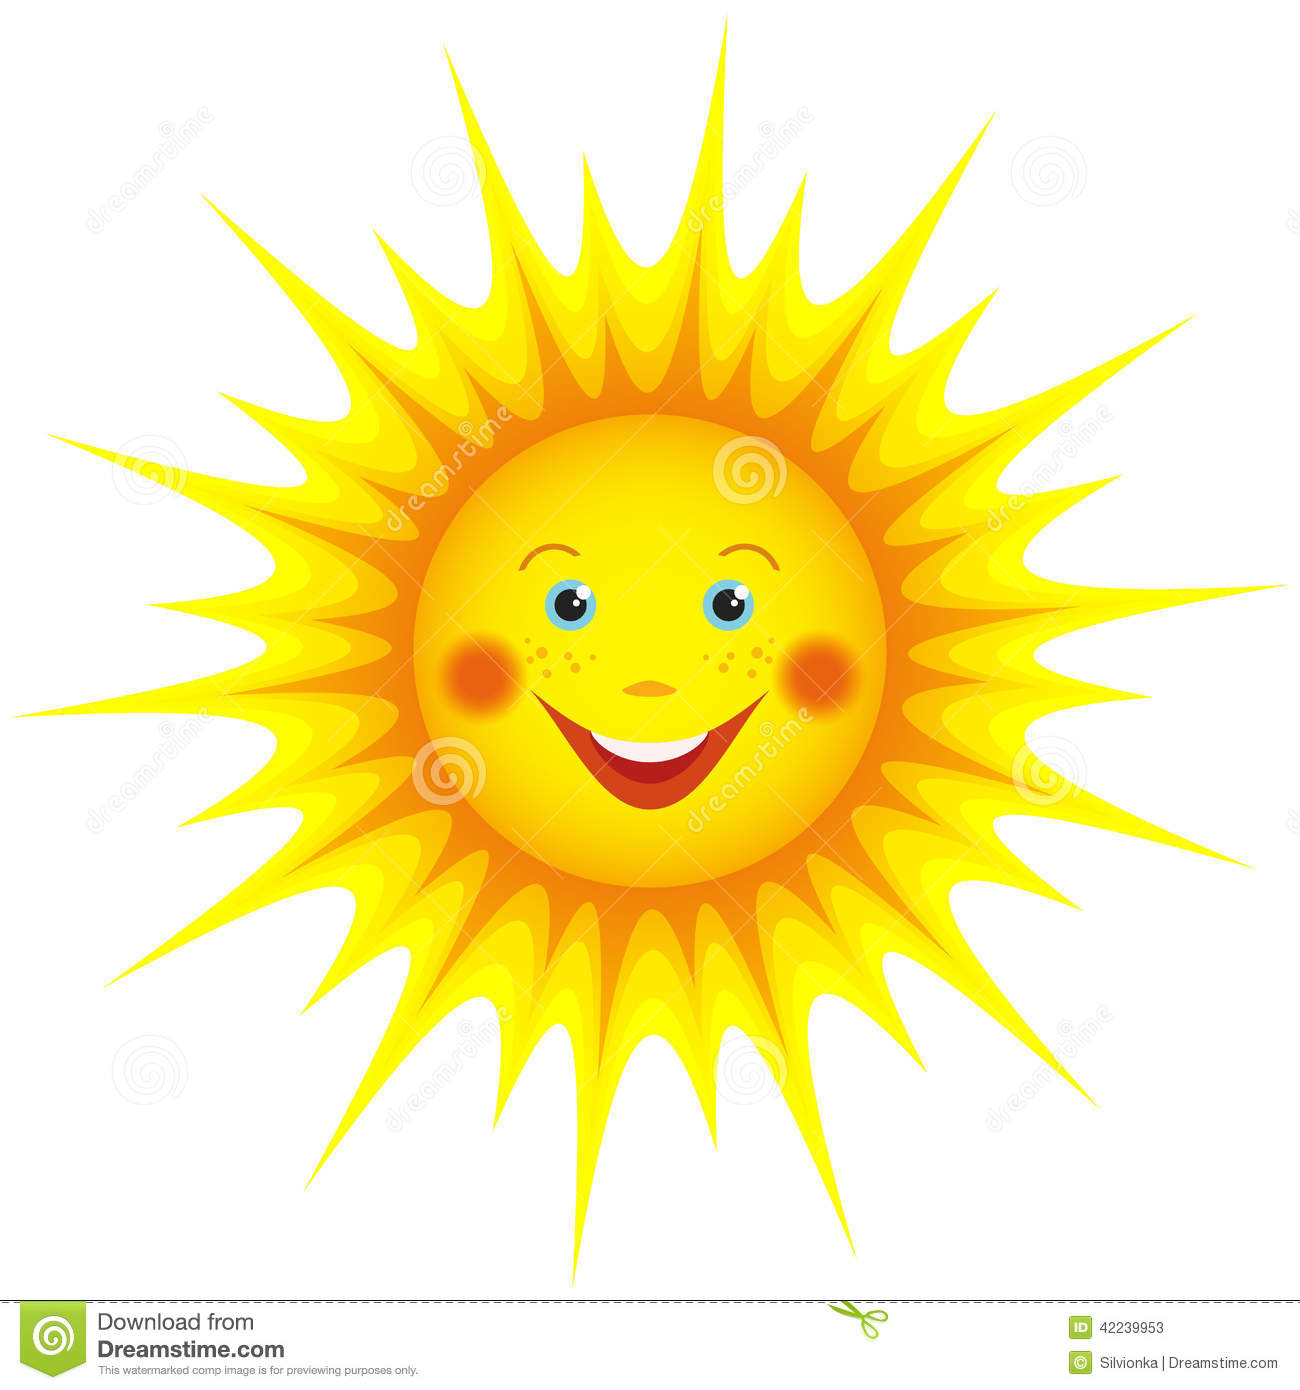 Smiling sun images - Royalty Free Vector Download Smiling Sun